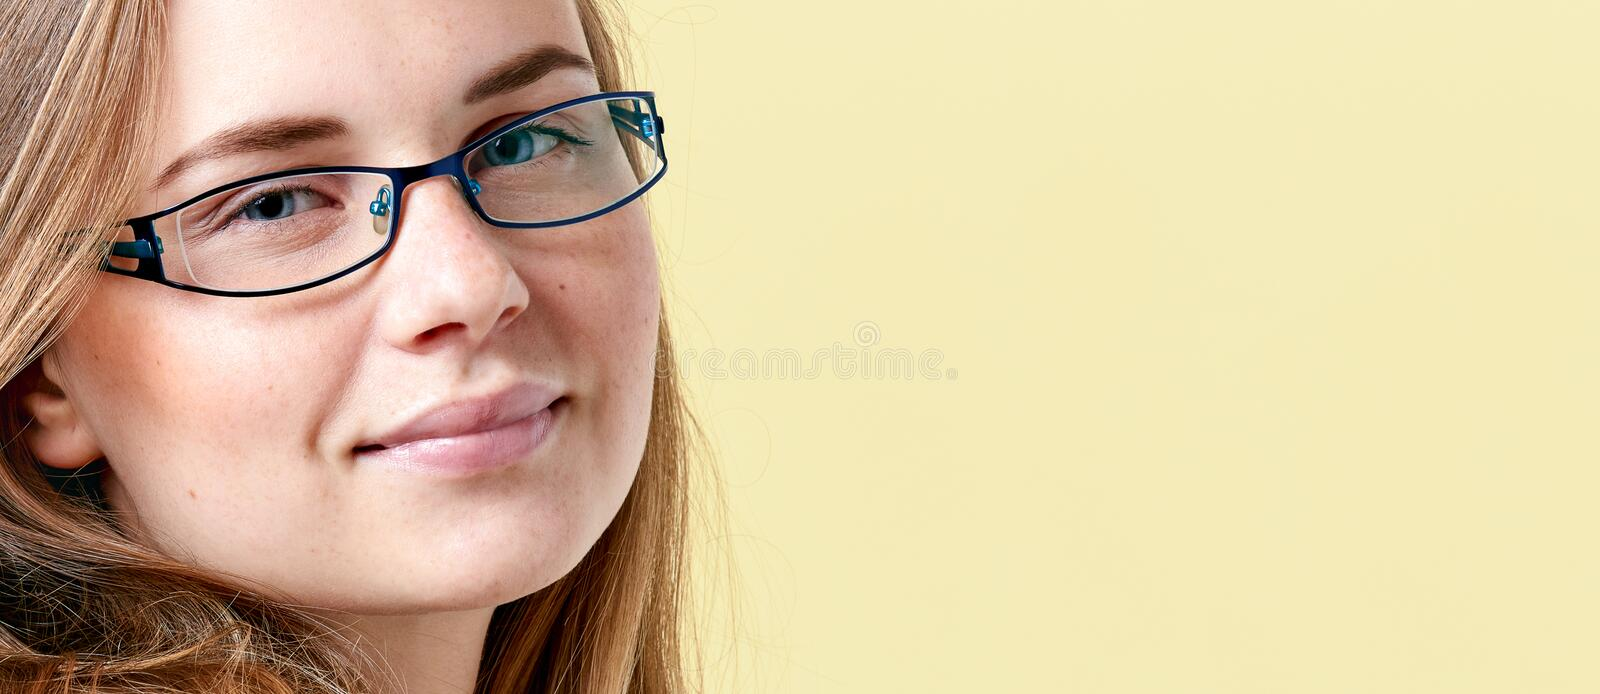 Beautiful redhead teenager girl with freckles wearing reading glasses, smiling teen portrait royalty free stock photos